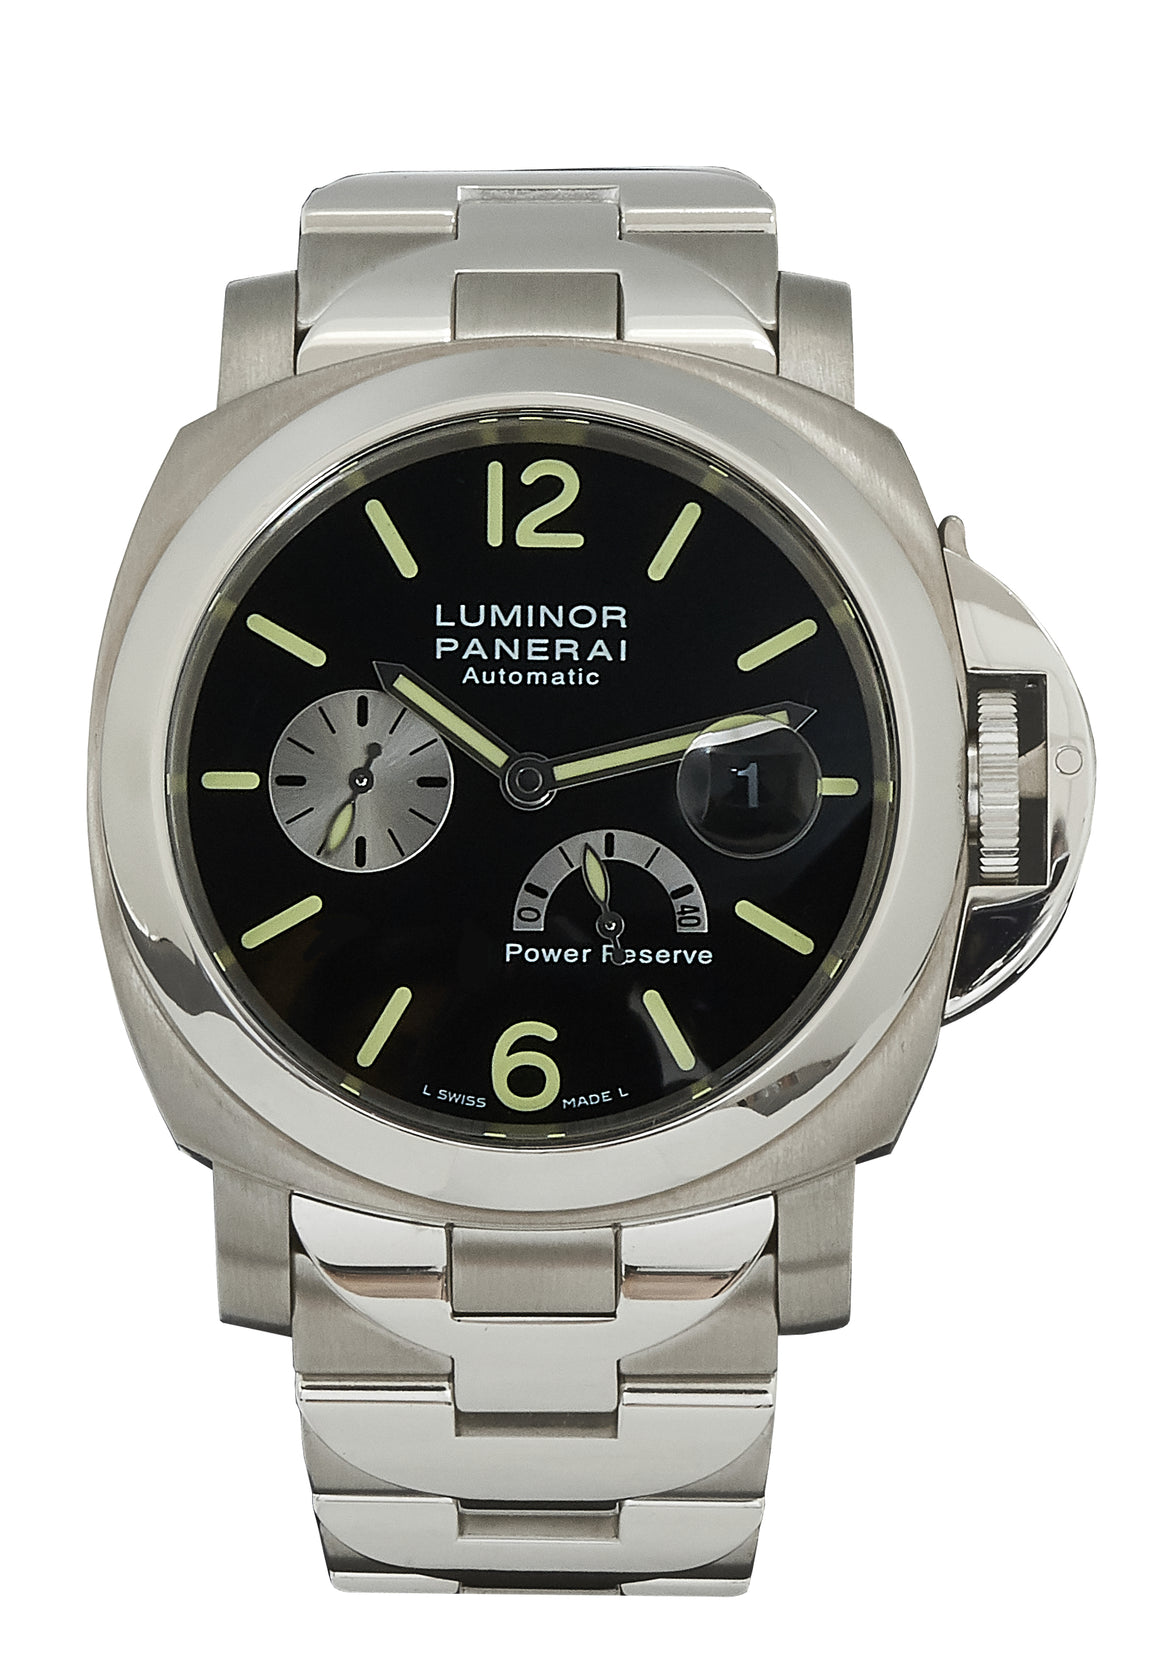 Panerai Luminor Power Reserve, PAM171